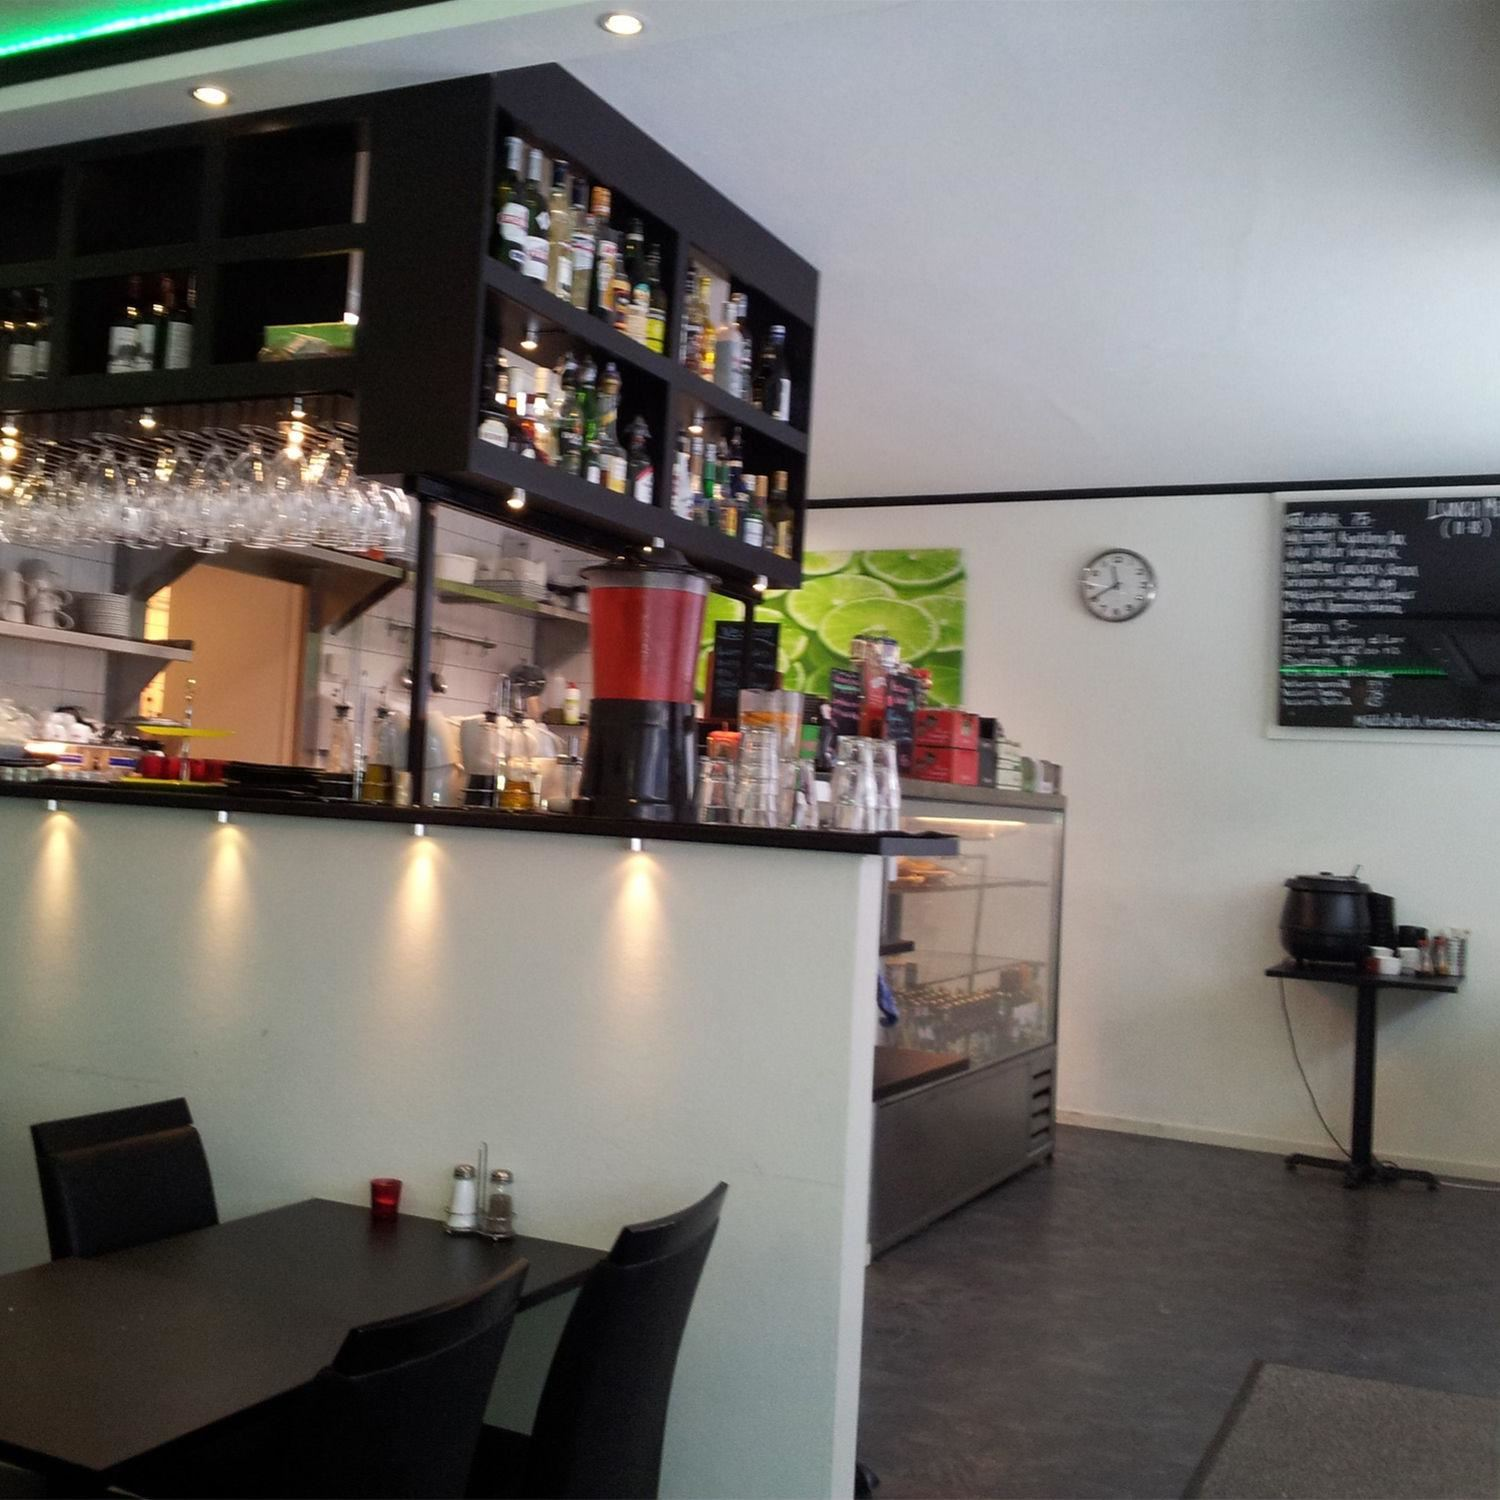 Lime restaurang och drinkbar